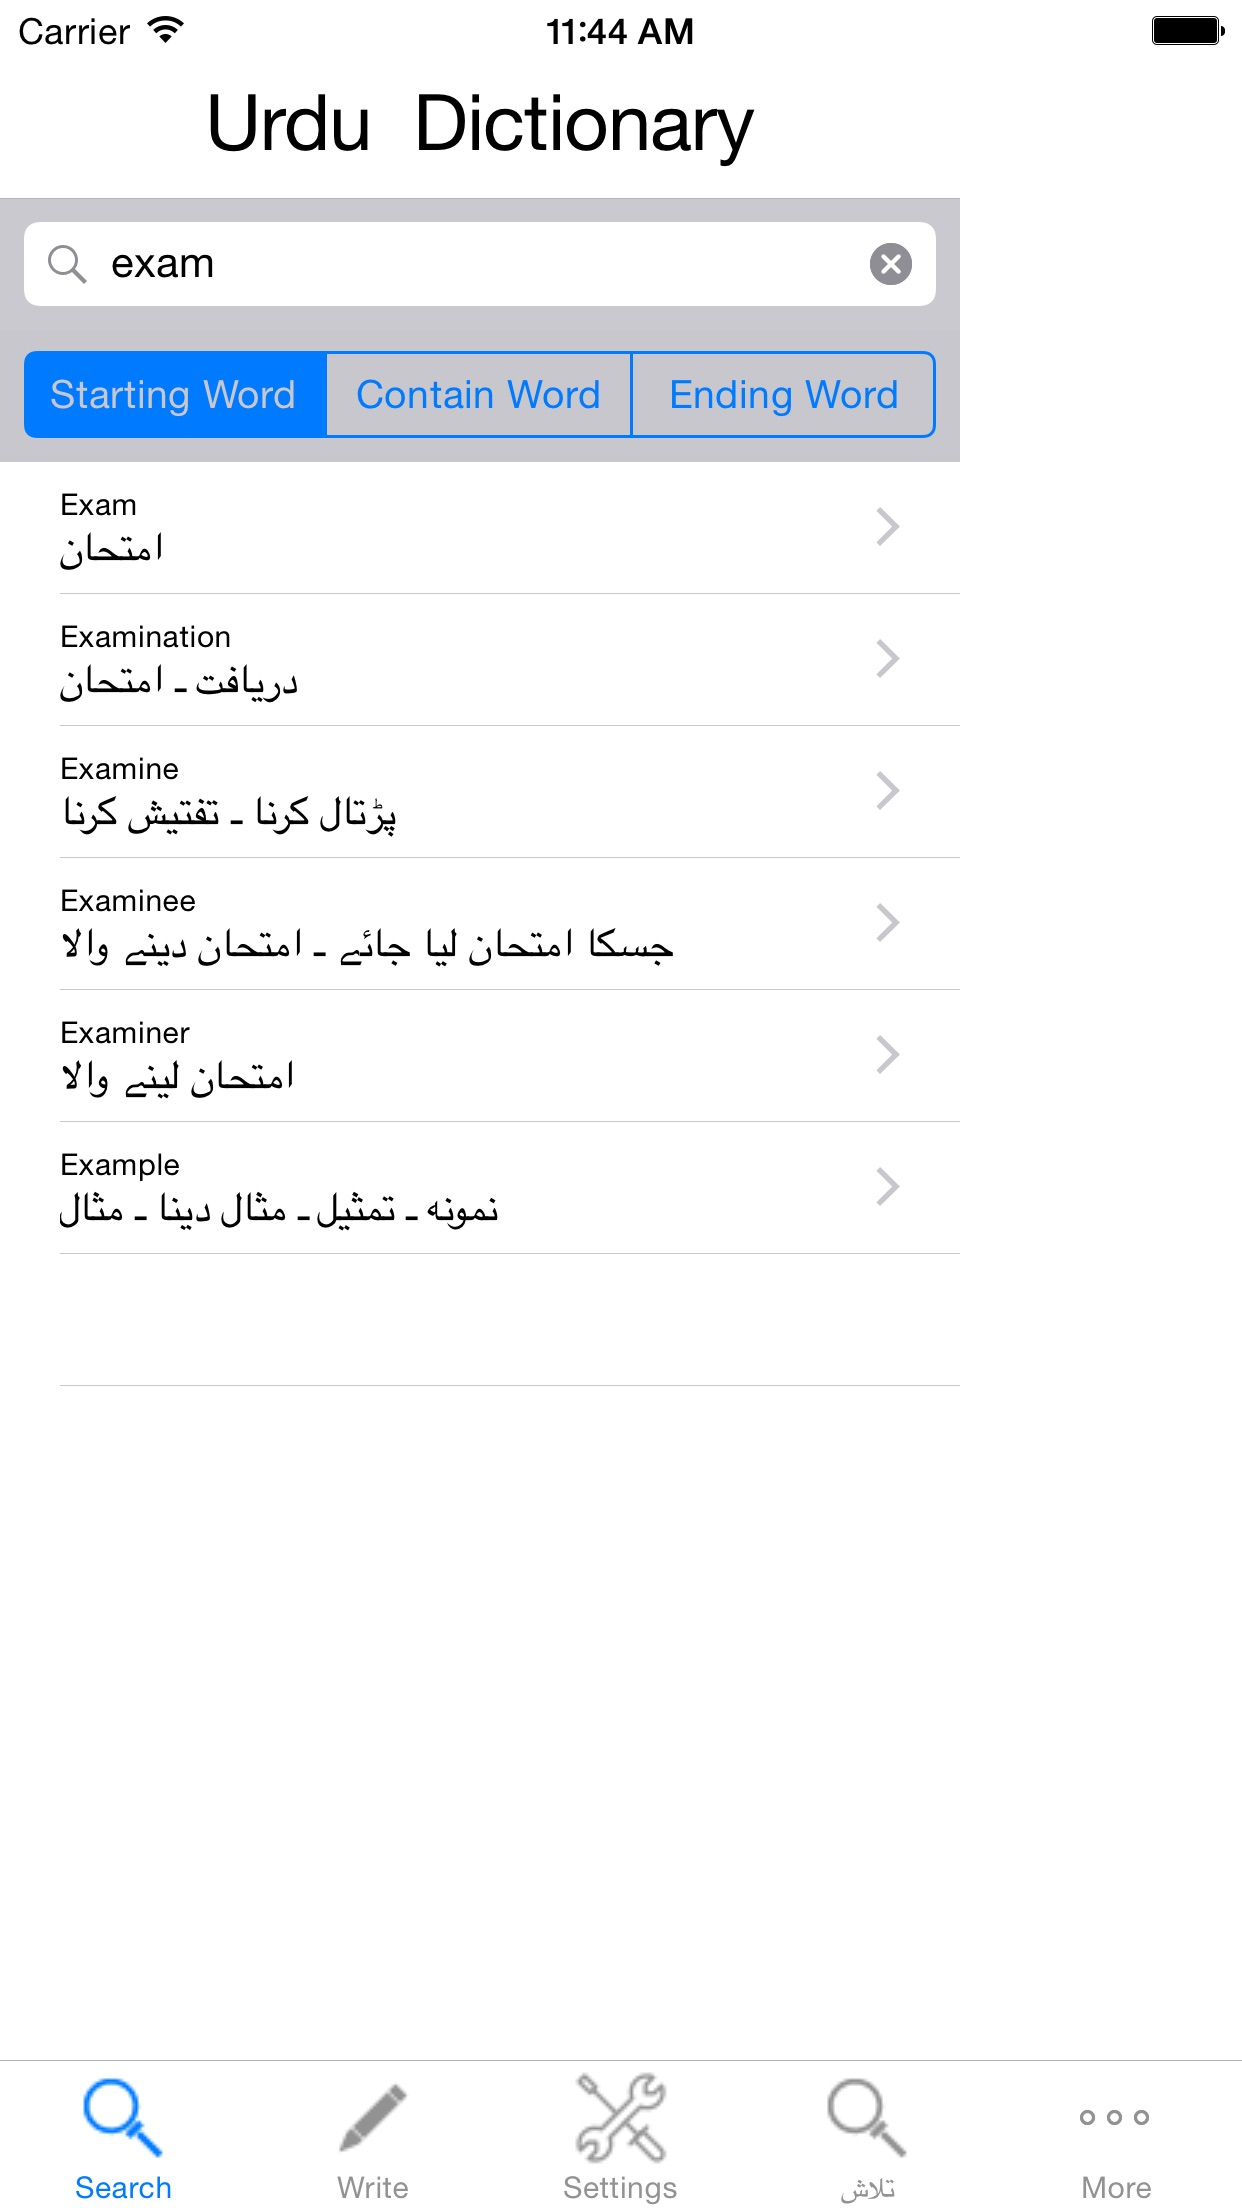 Urdu Dictionary English Screenshot